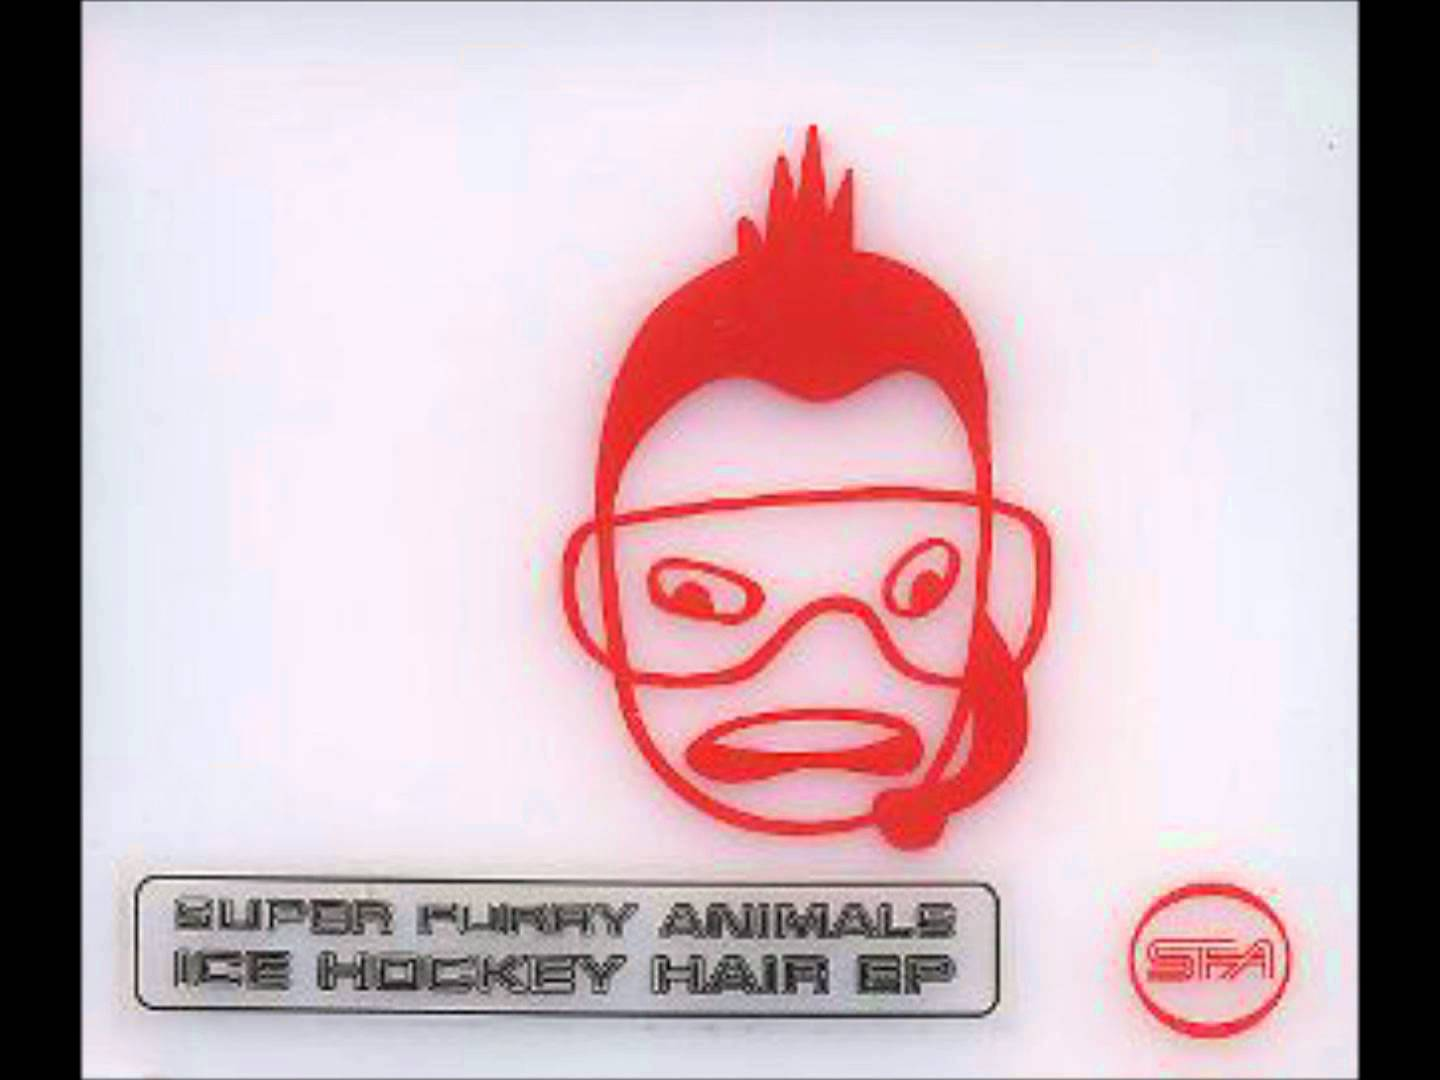 Super Furry Animals – Ice Hockey Hair